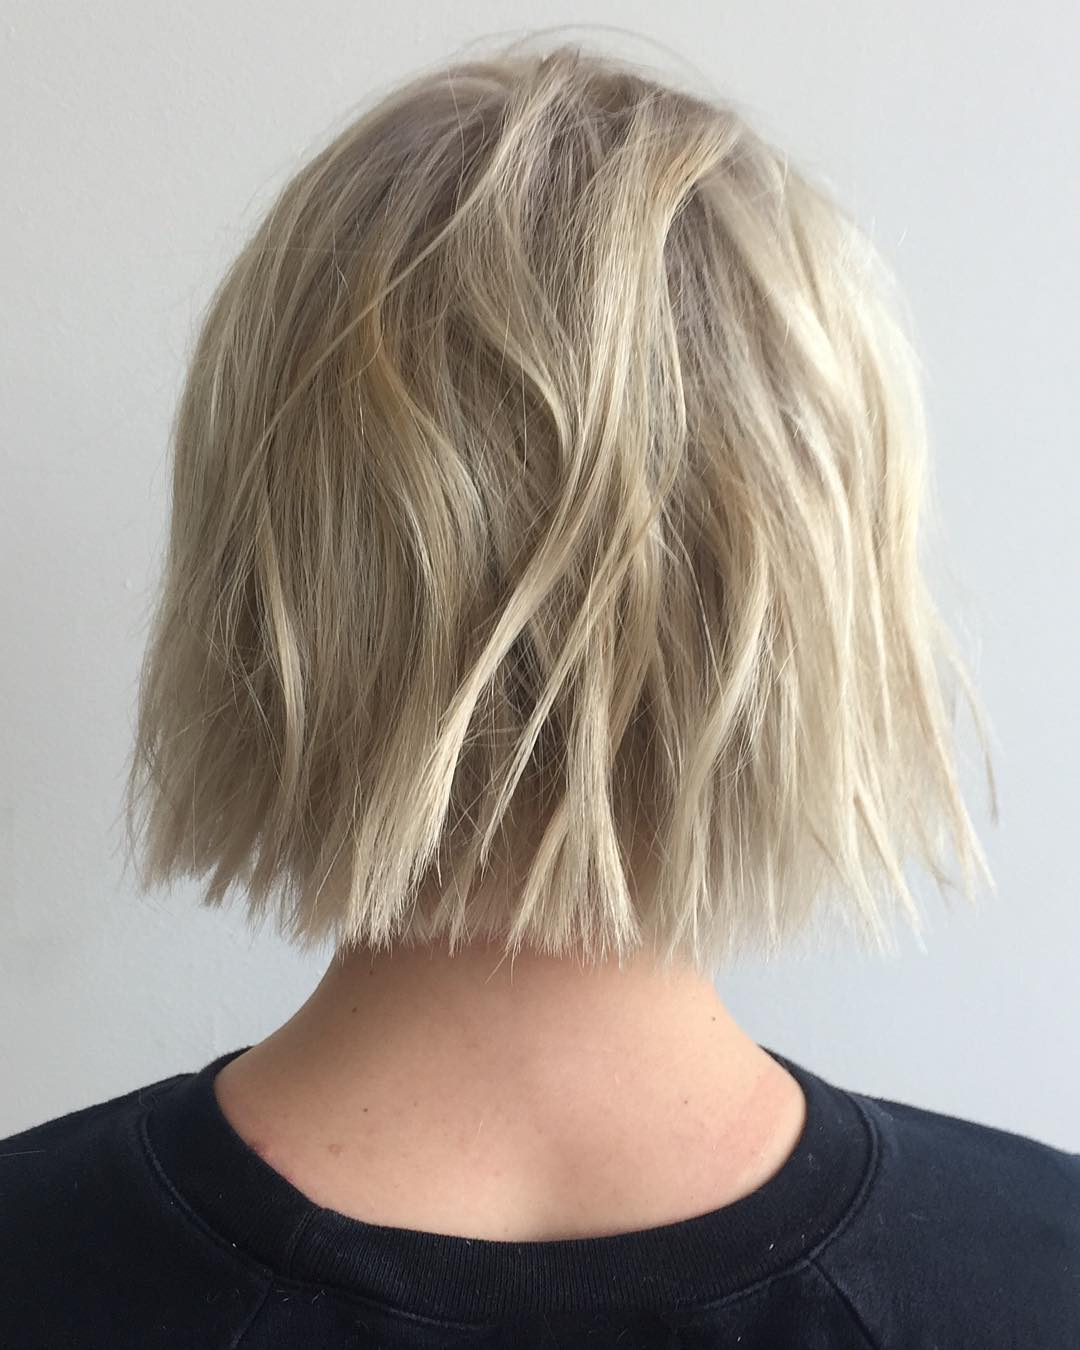 One-Length Blonde Bob with Choppy Ends